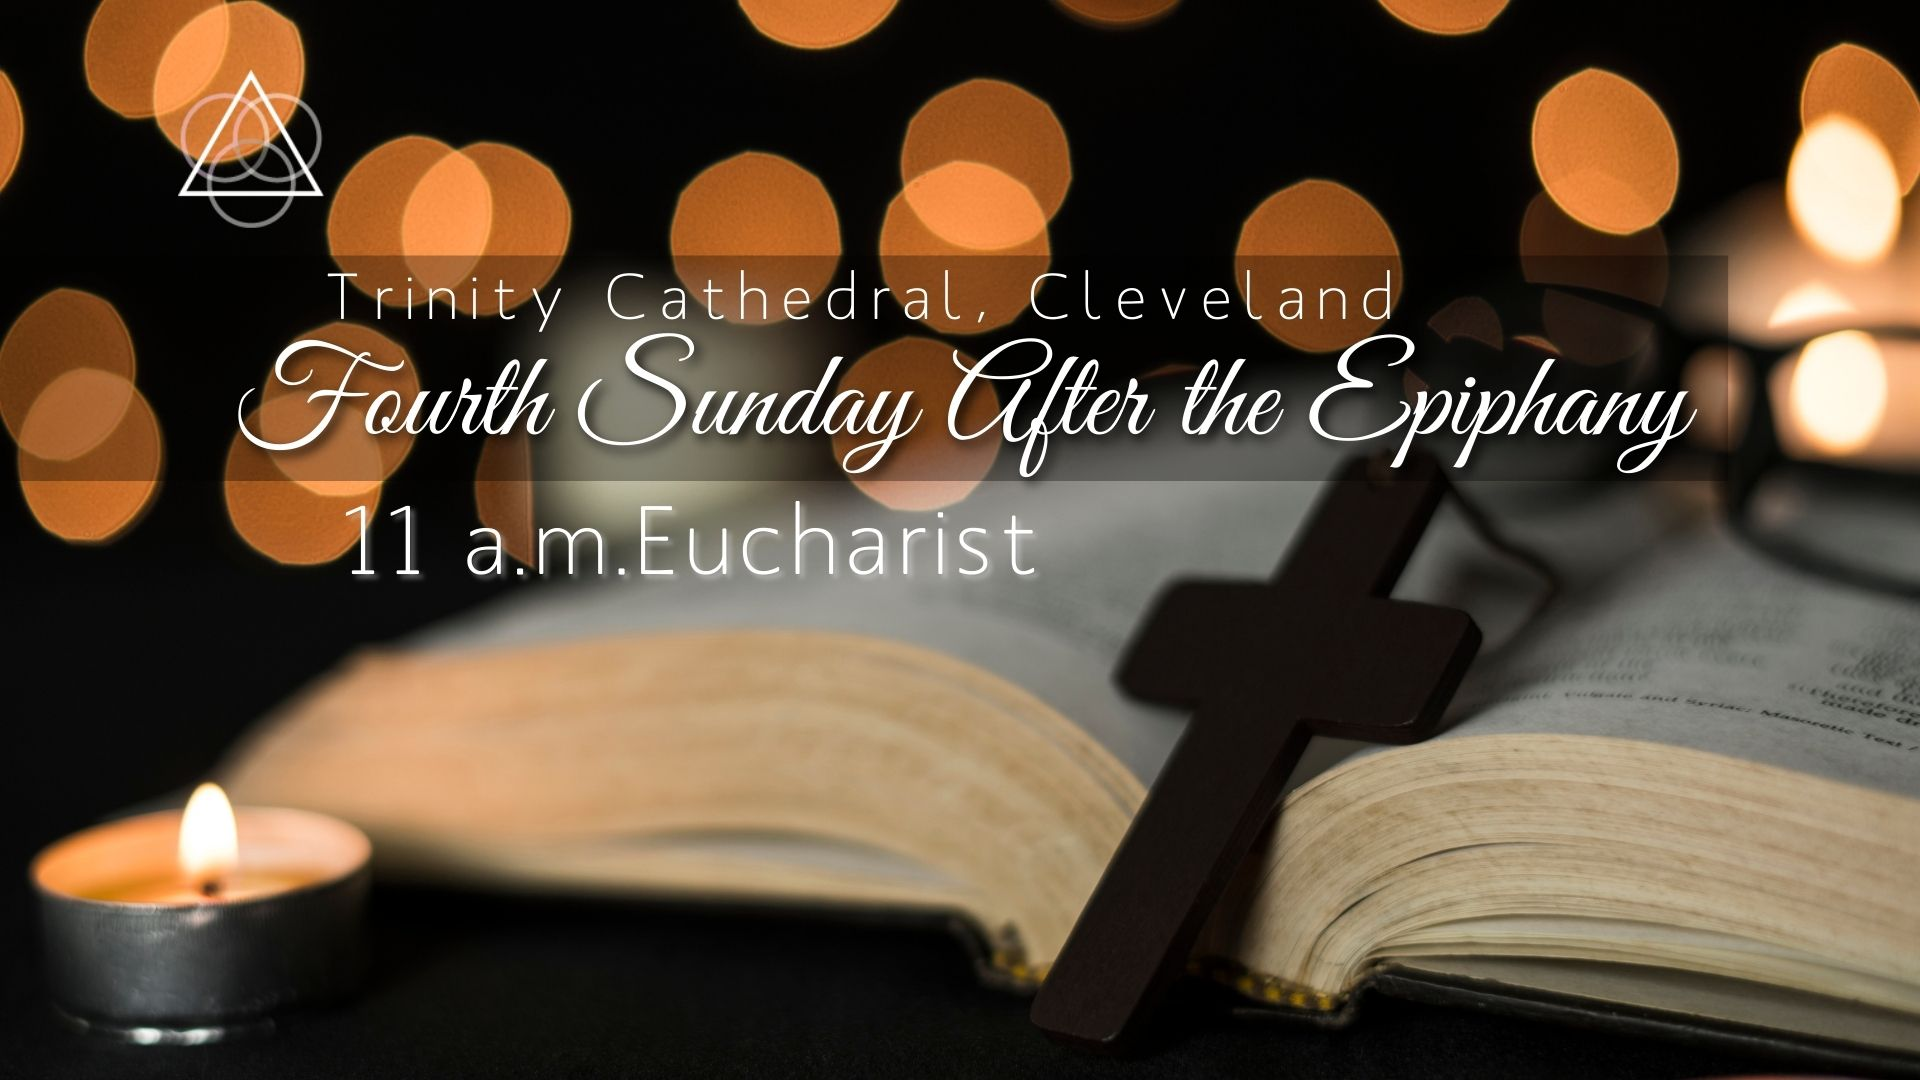 Holy Eucharist: The Fourth Sunday After the Epiphany—January 31, 2021